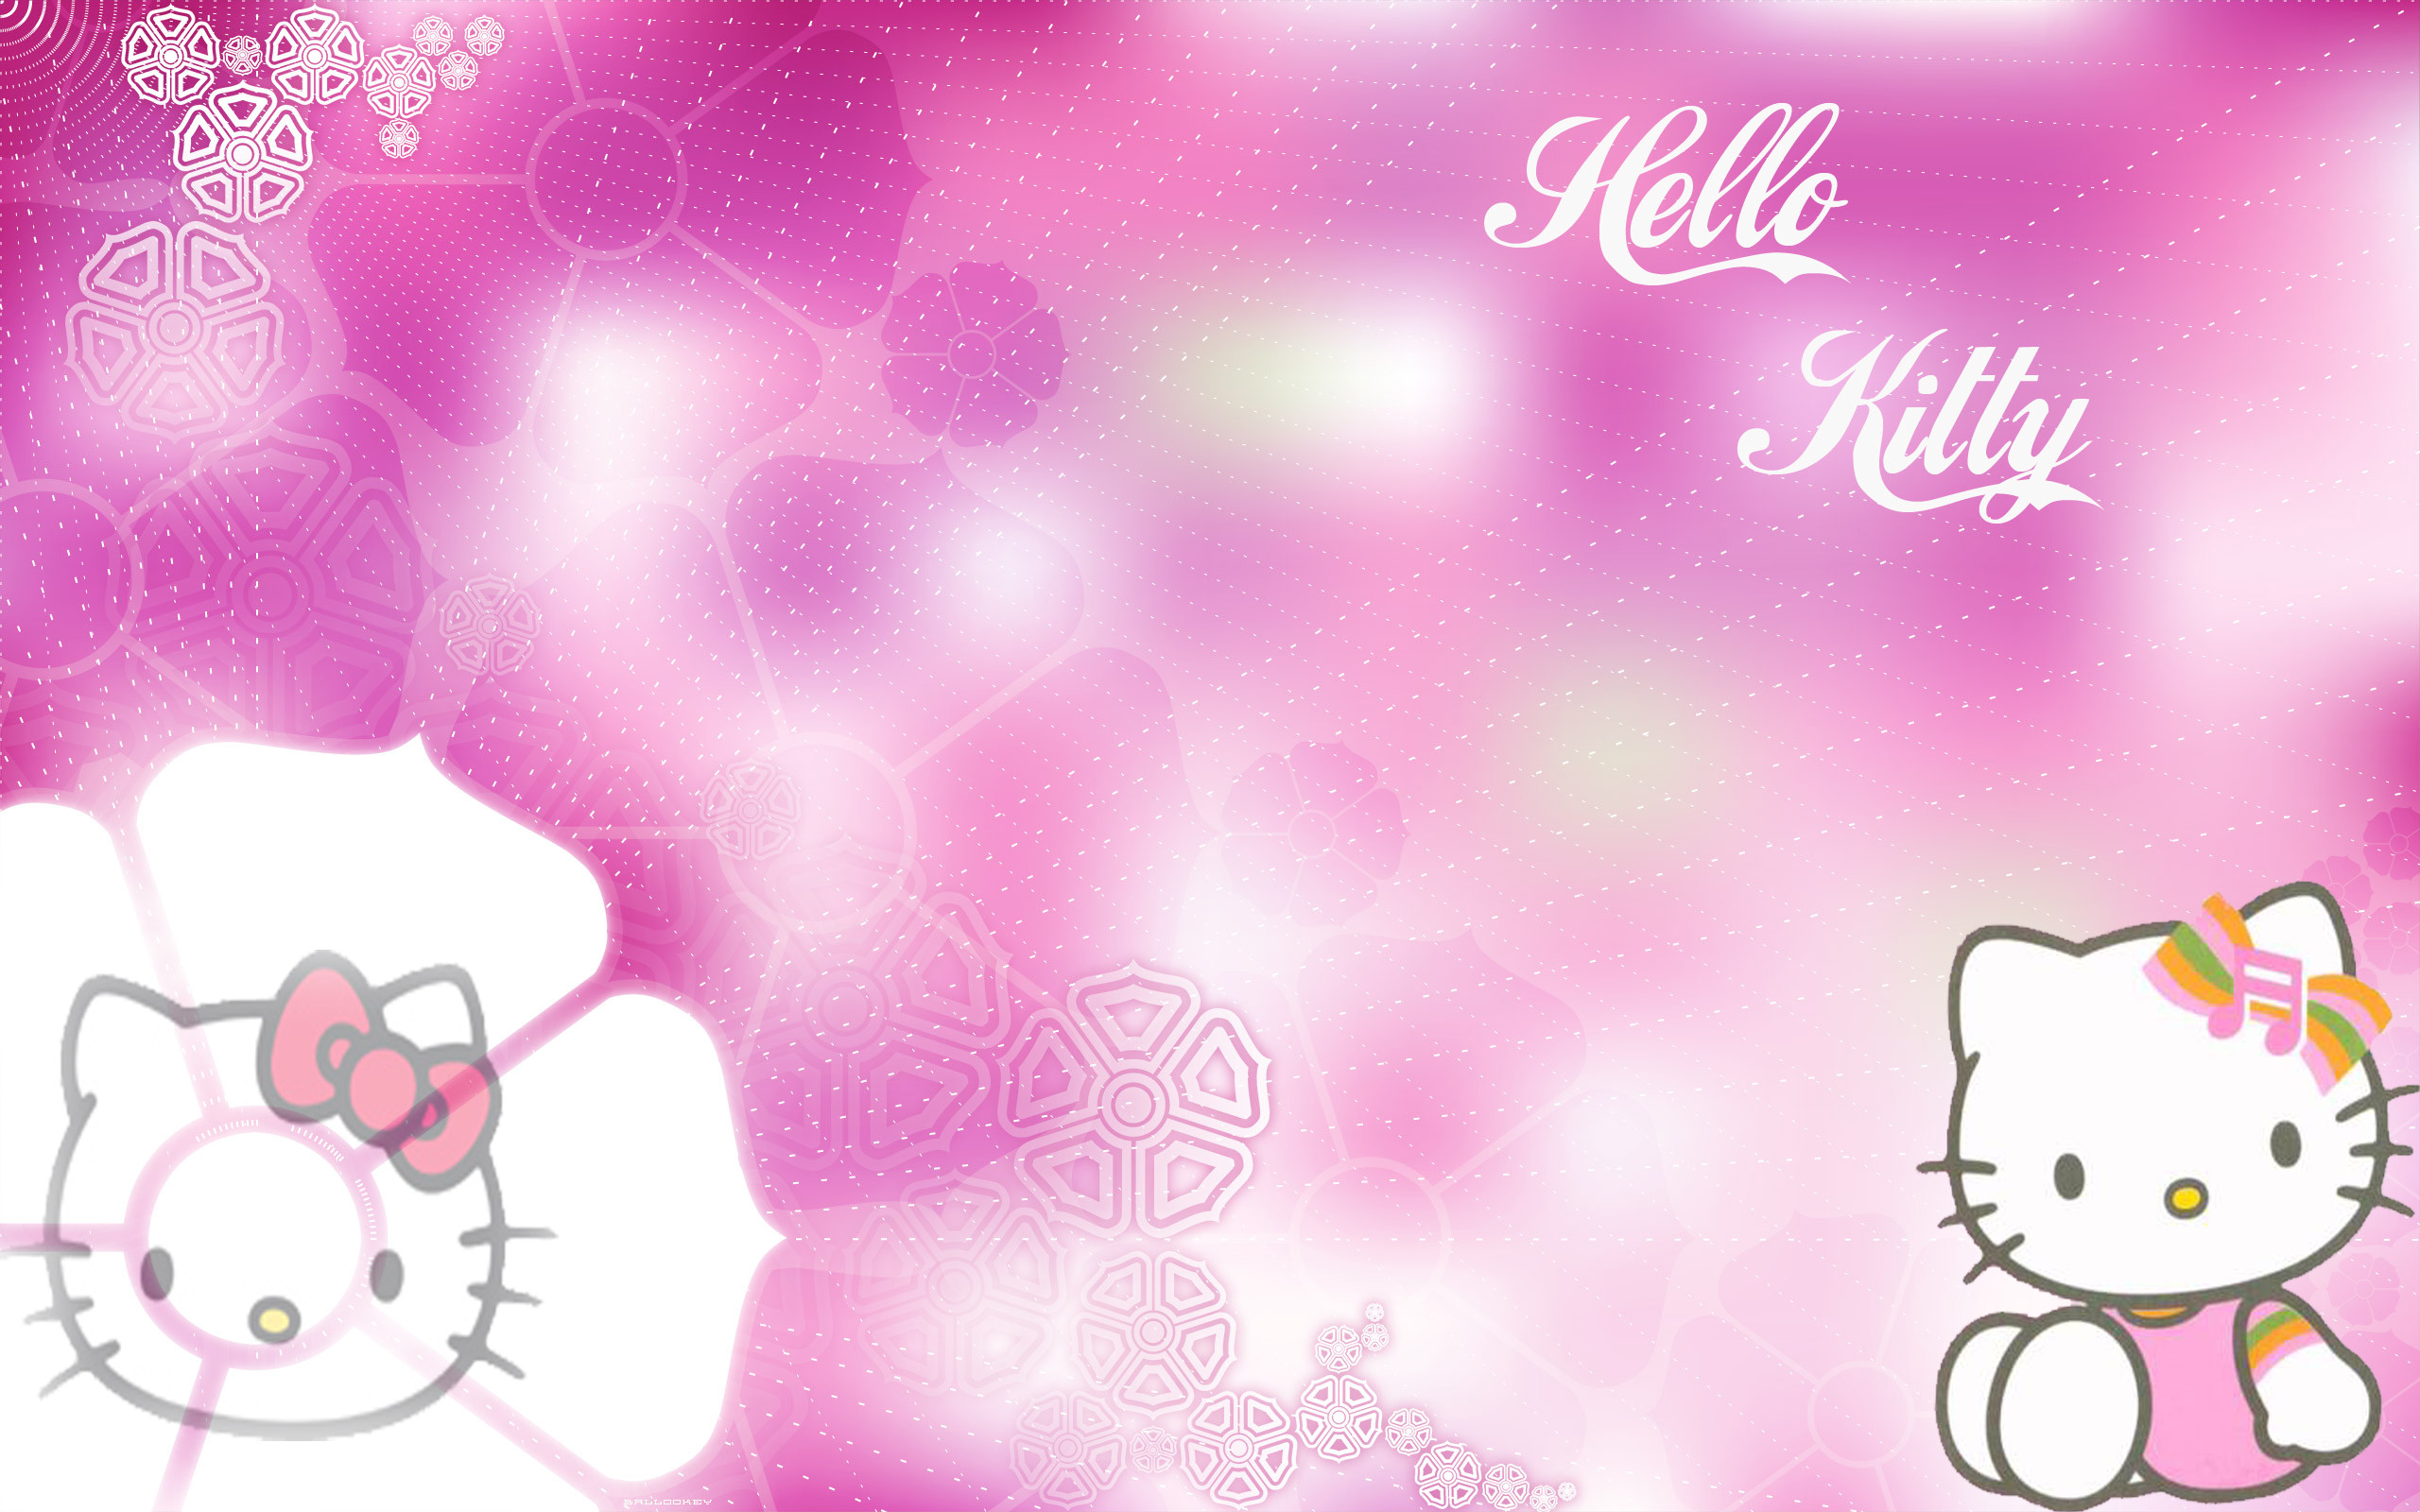 f285525d8 2560x1600 Cool Hello kitty background hd wallpapers